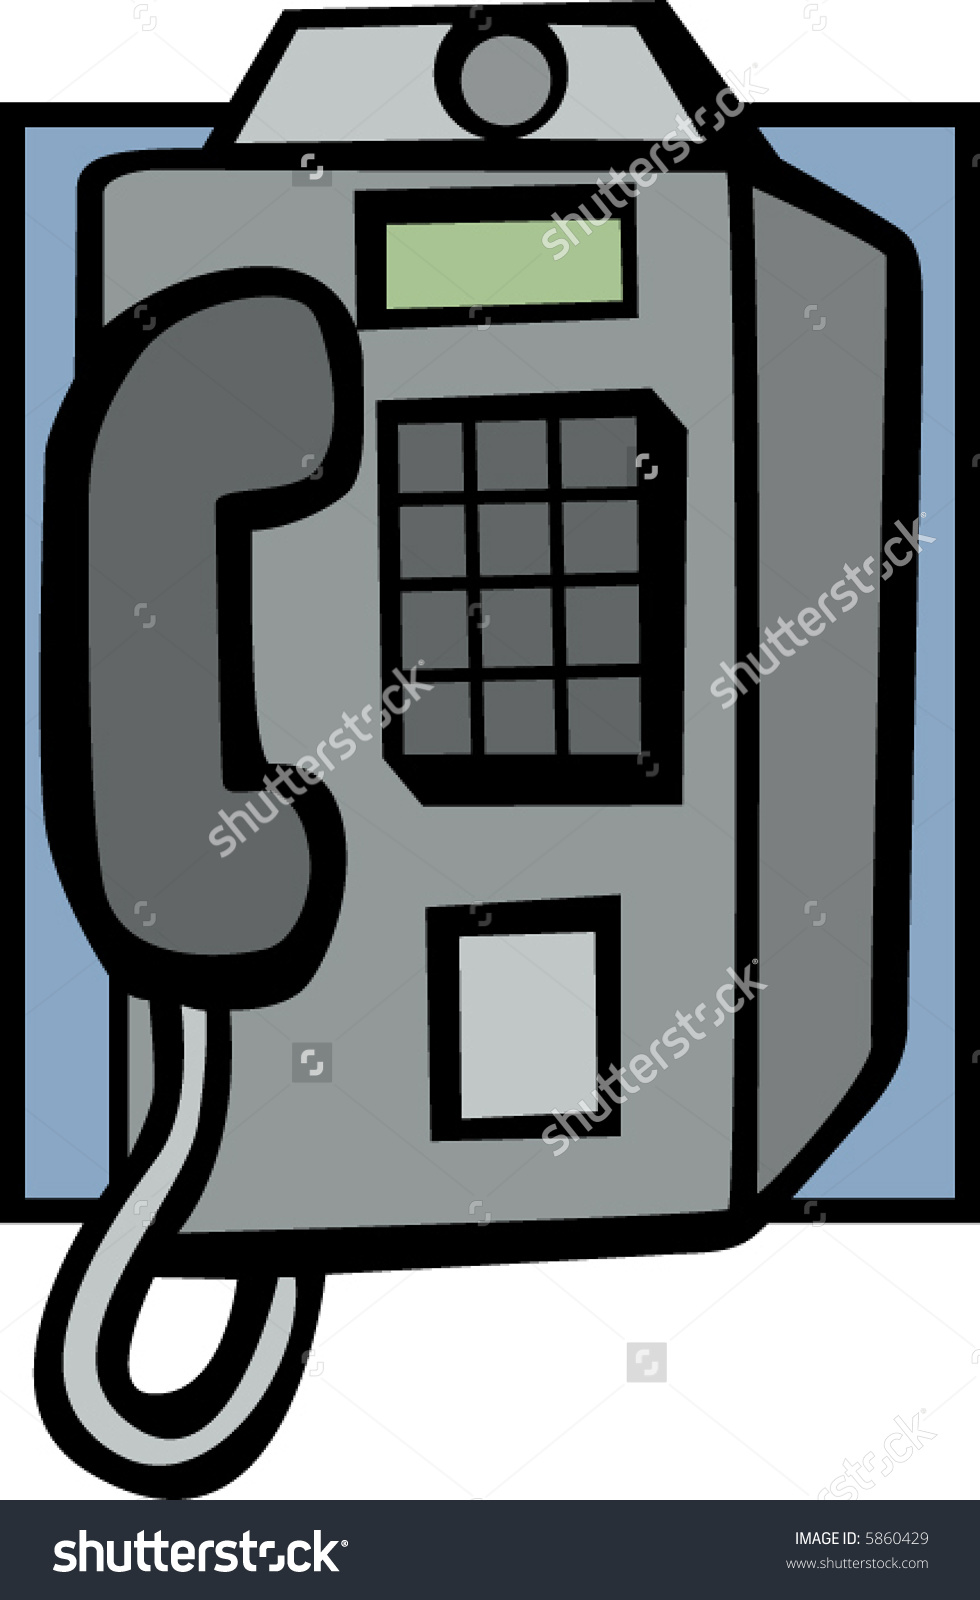 Coin Operated Public Telephone Stock Vector Illustration 5860429.